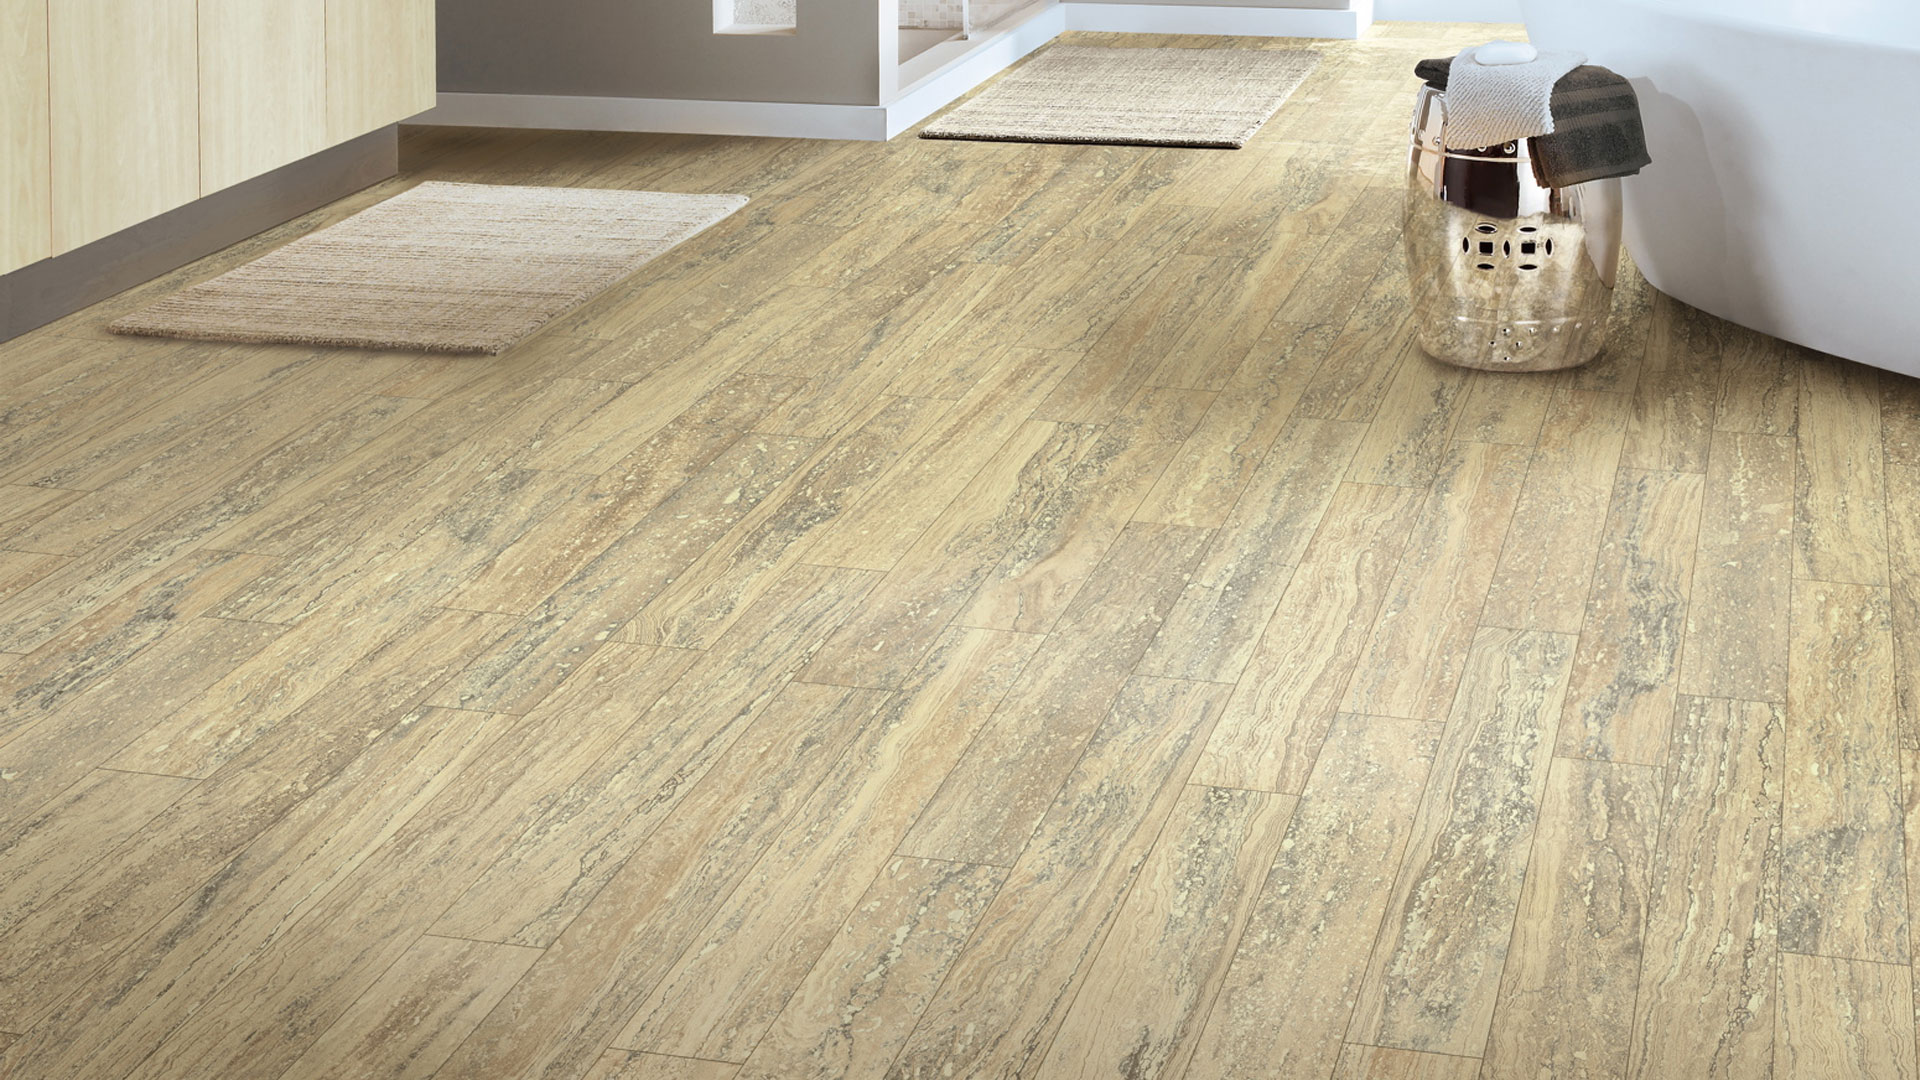 Resilient flooring vinyl sheet floors from armstrong for Linoleum flooring